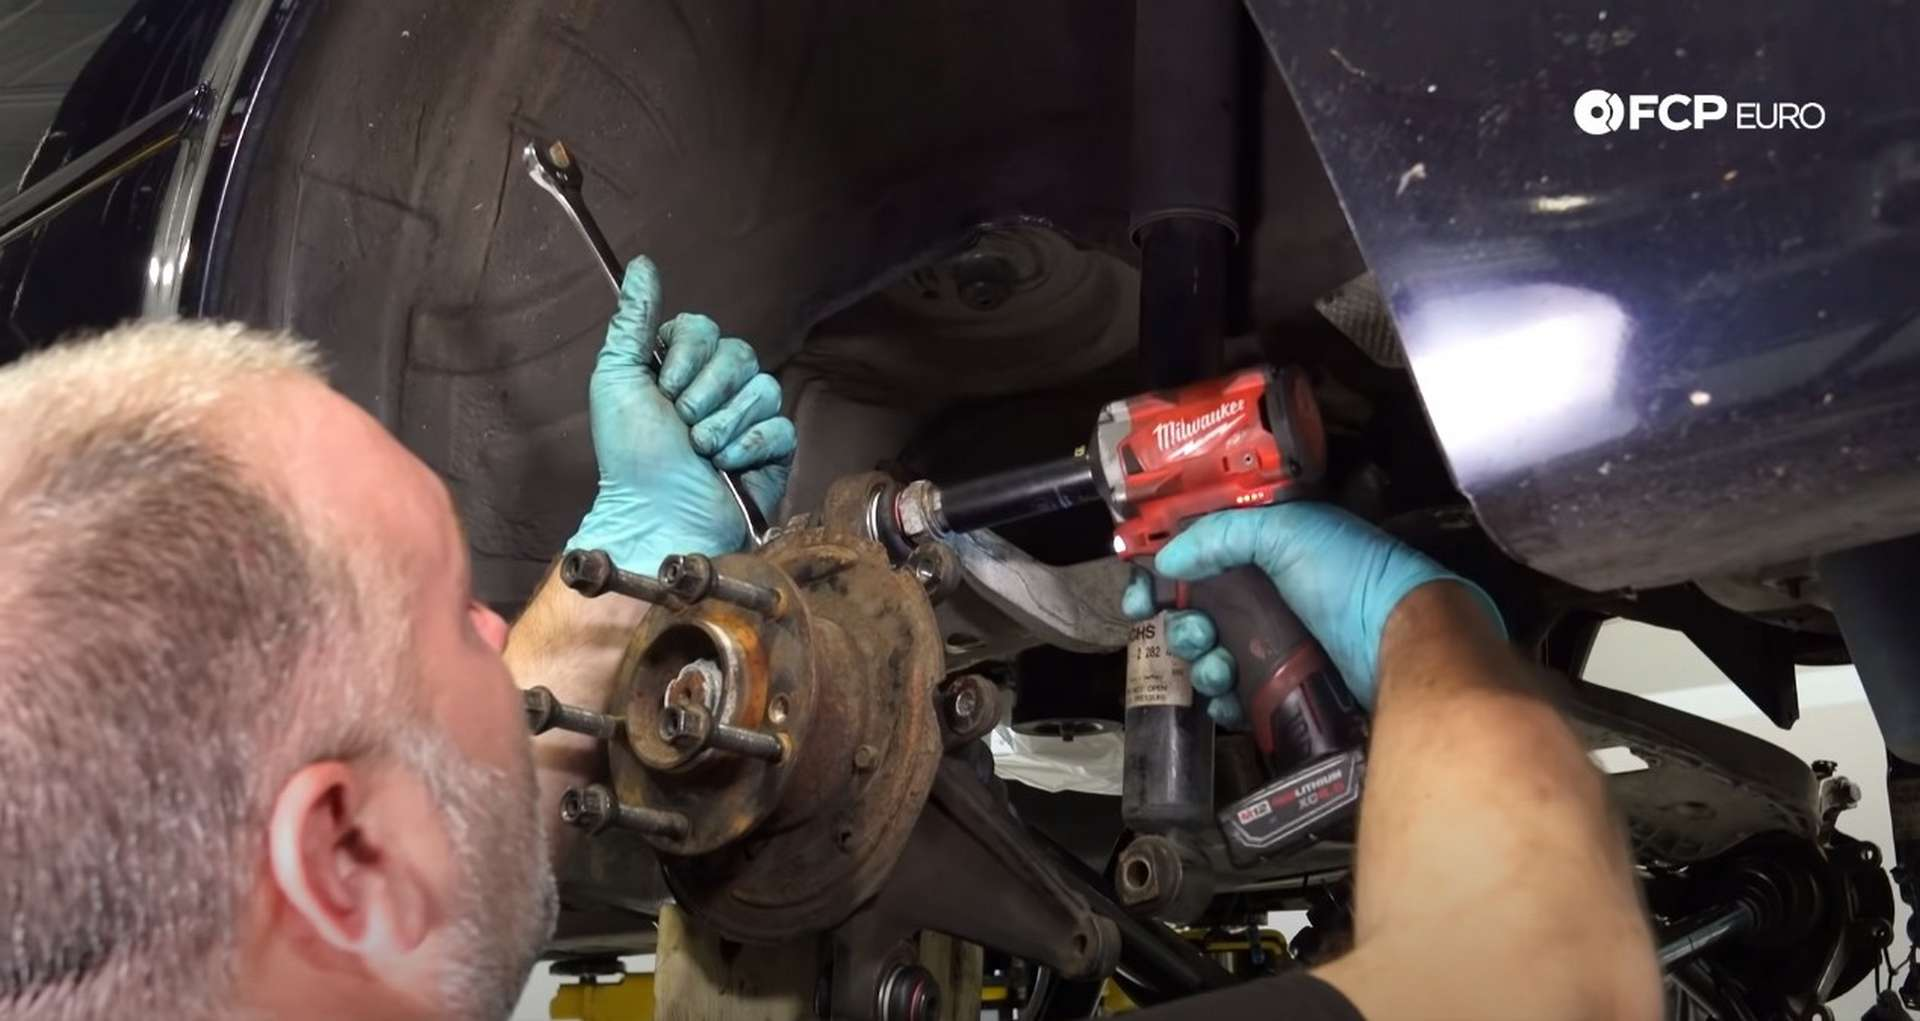 DIY E46 BMW M3 Rear Subframe Refresh Part 3 securing the knuckle assembly to the upper control arm